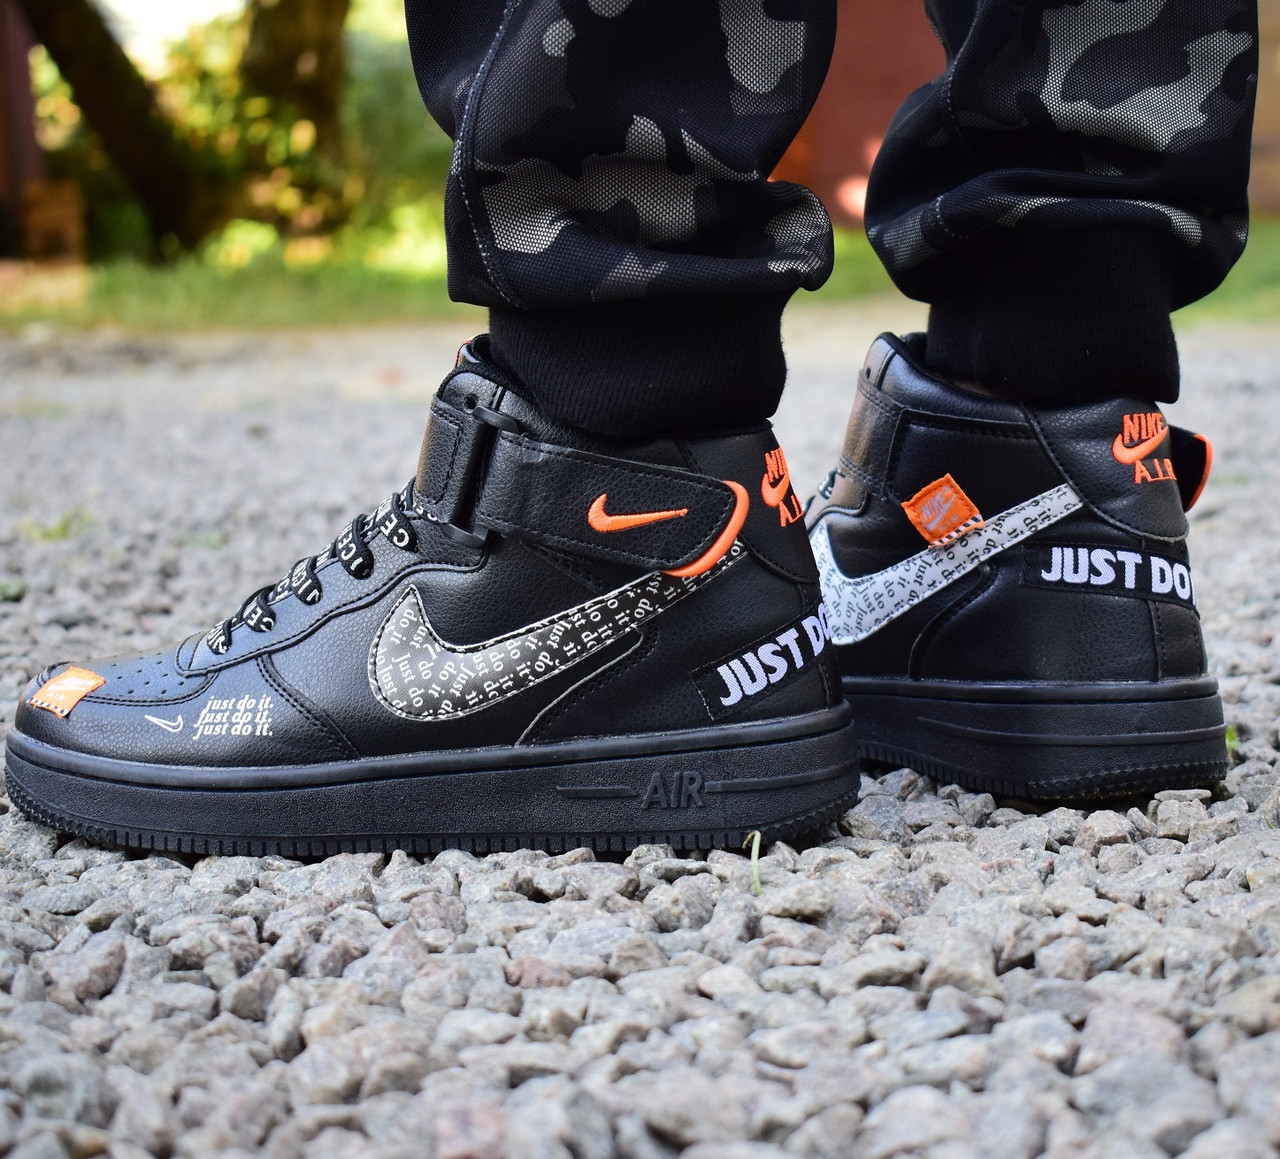 Nike Air Force 1 just do it High